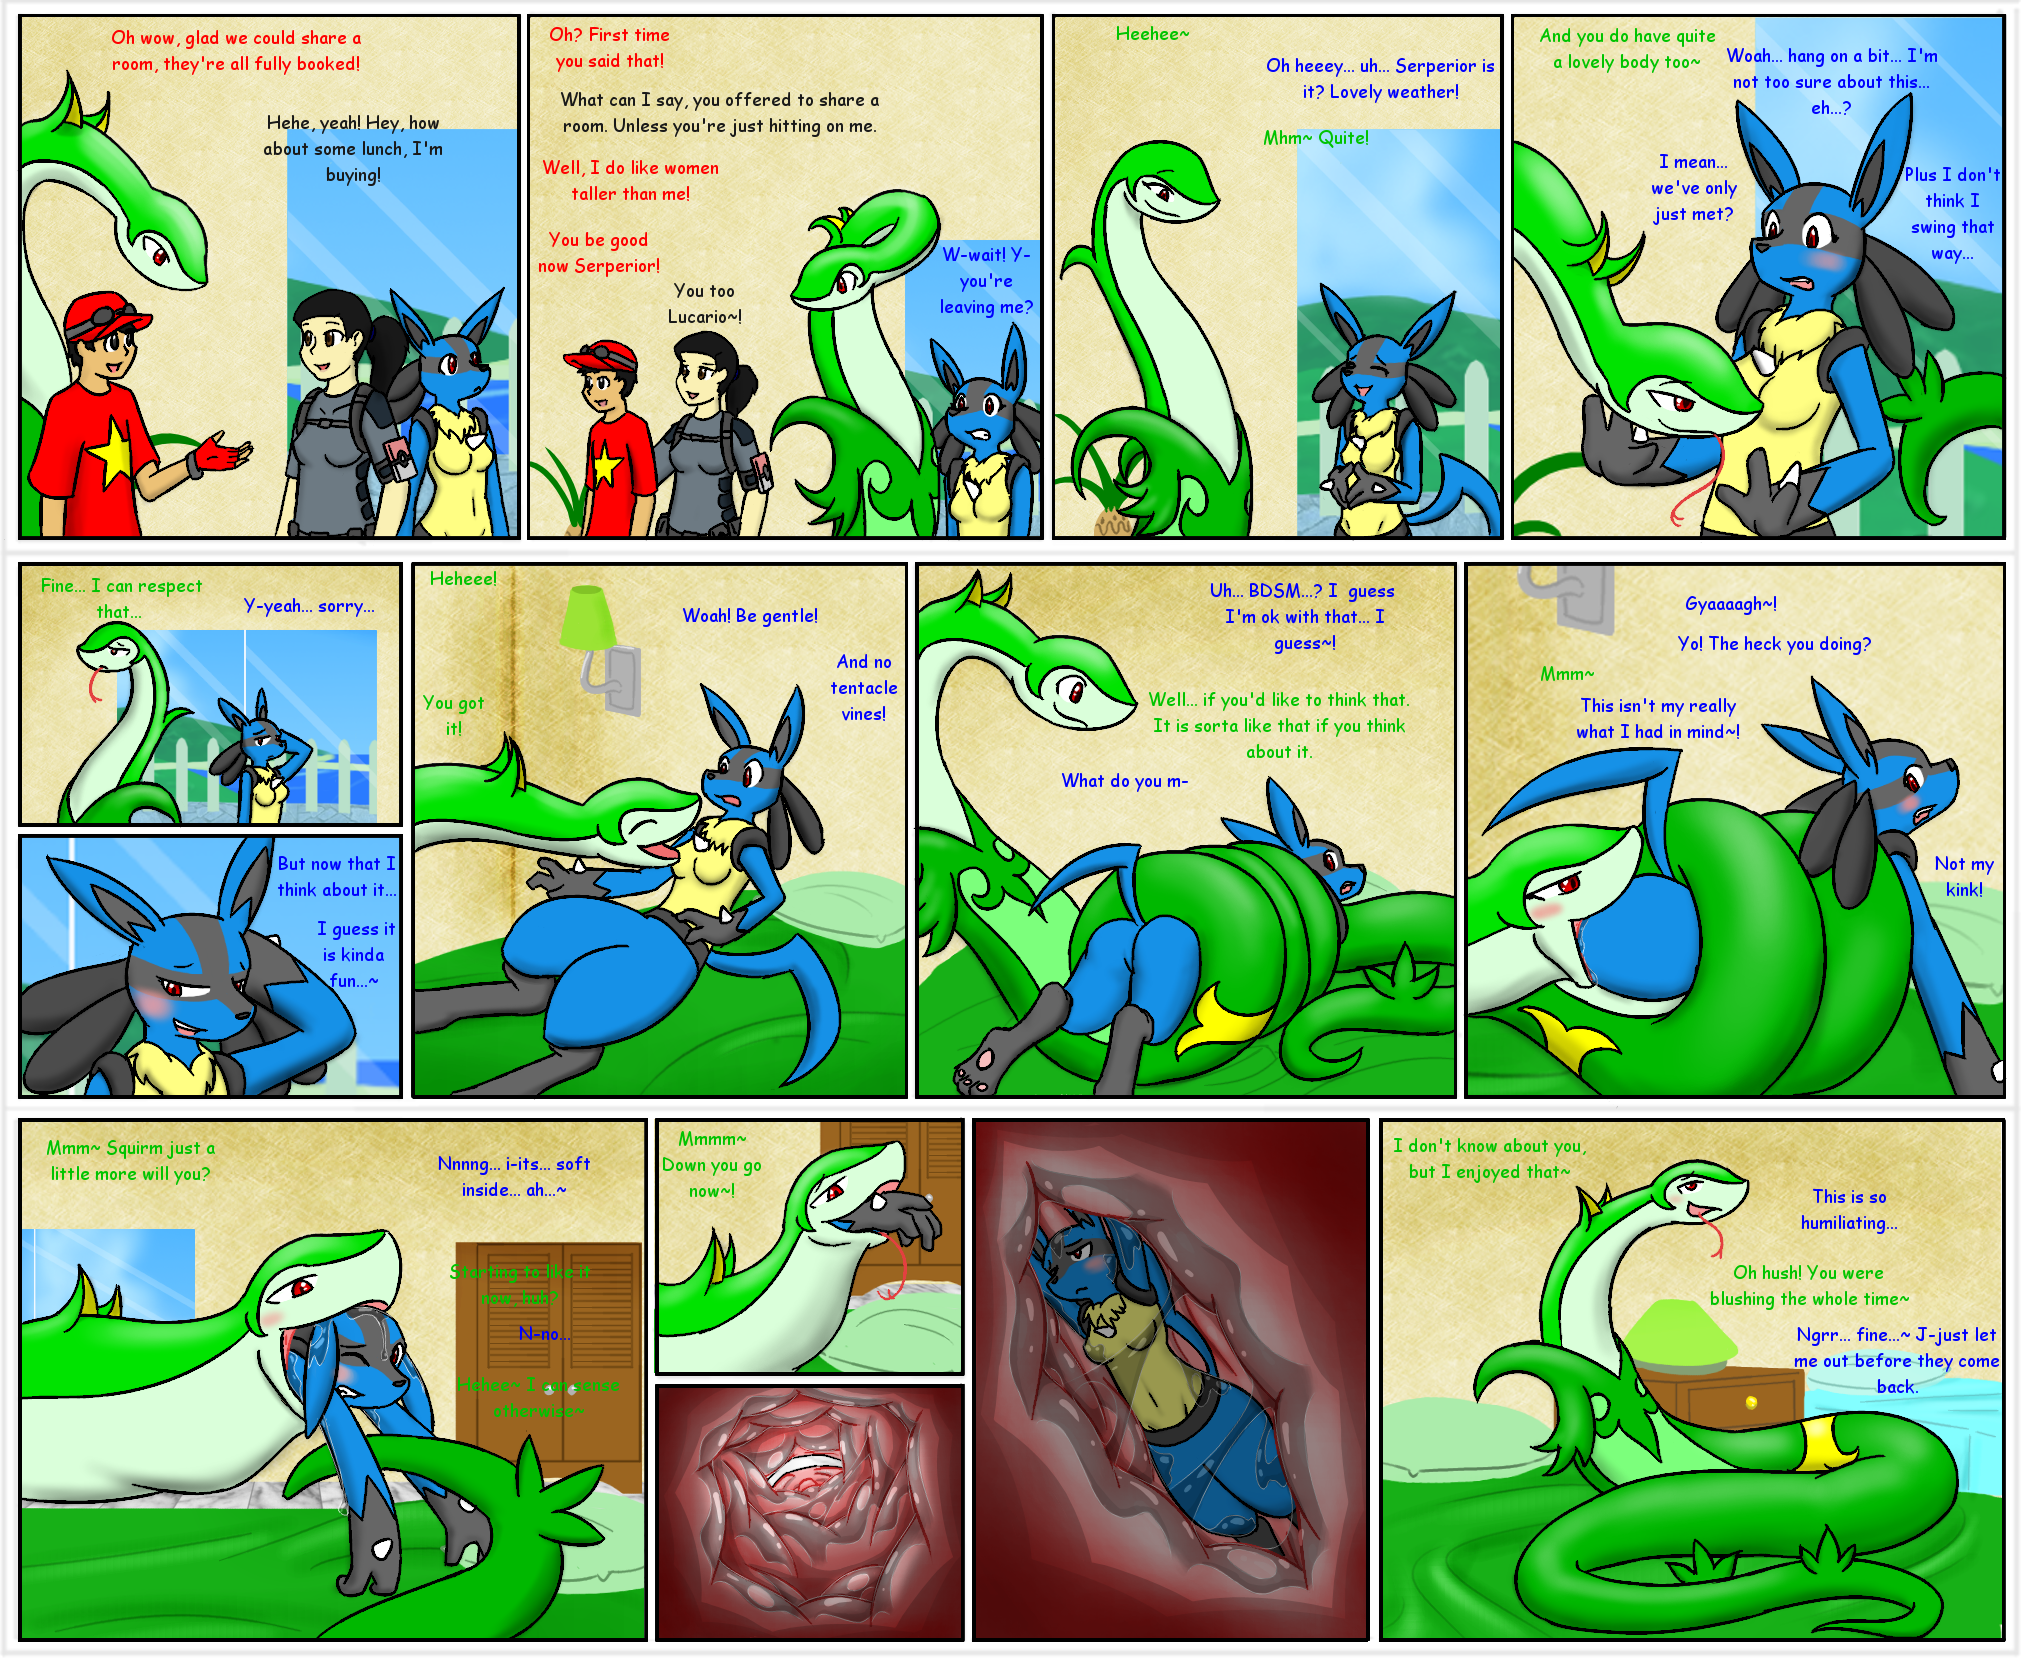 Here be dragons: a short story